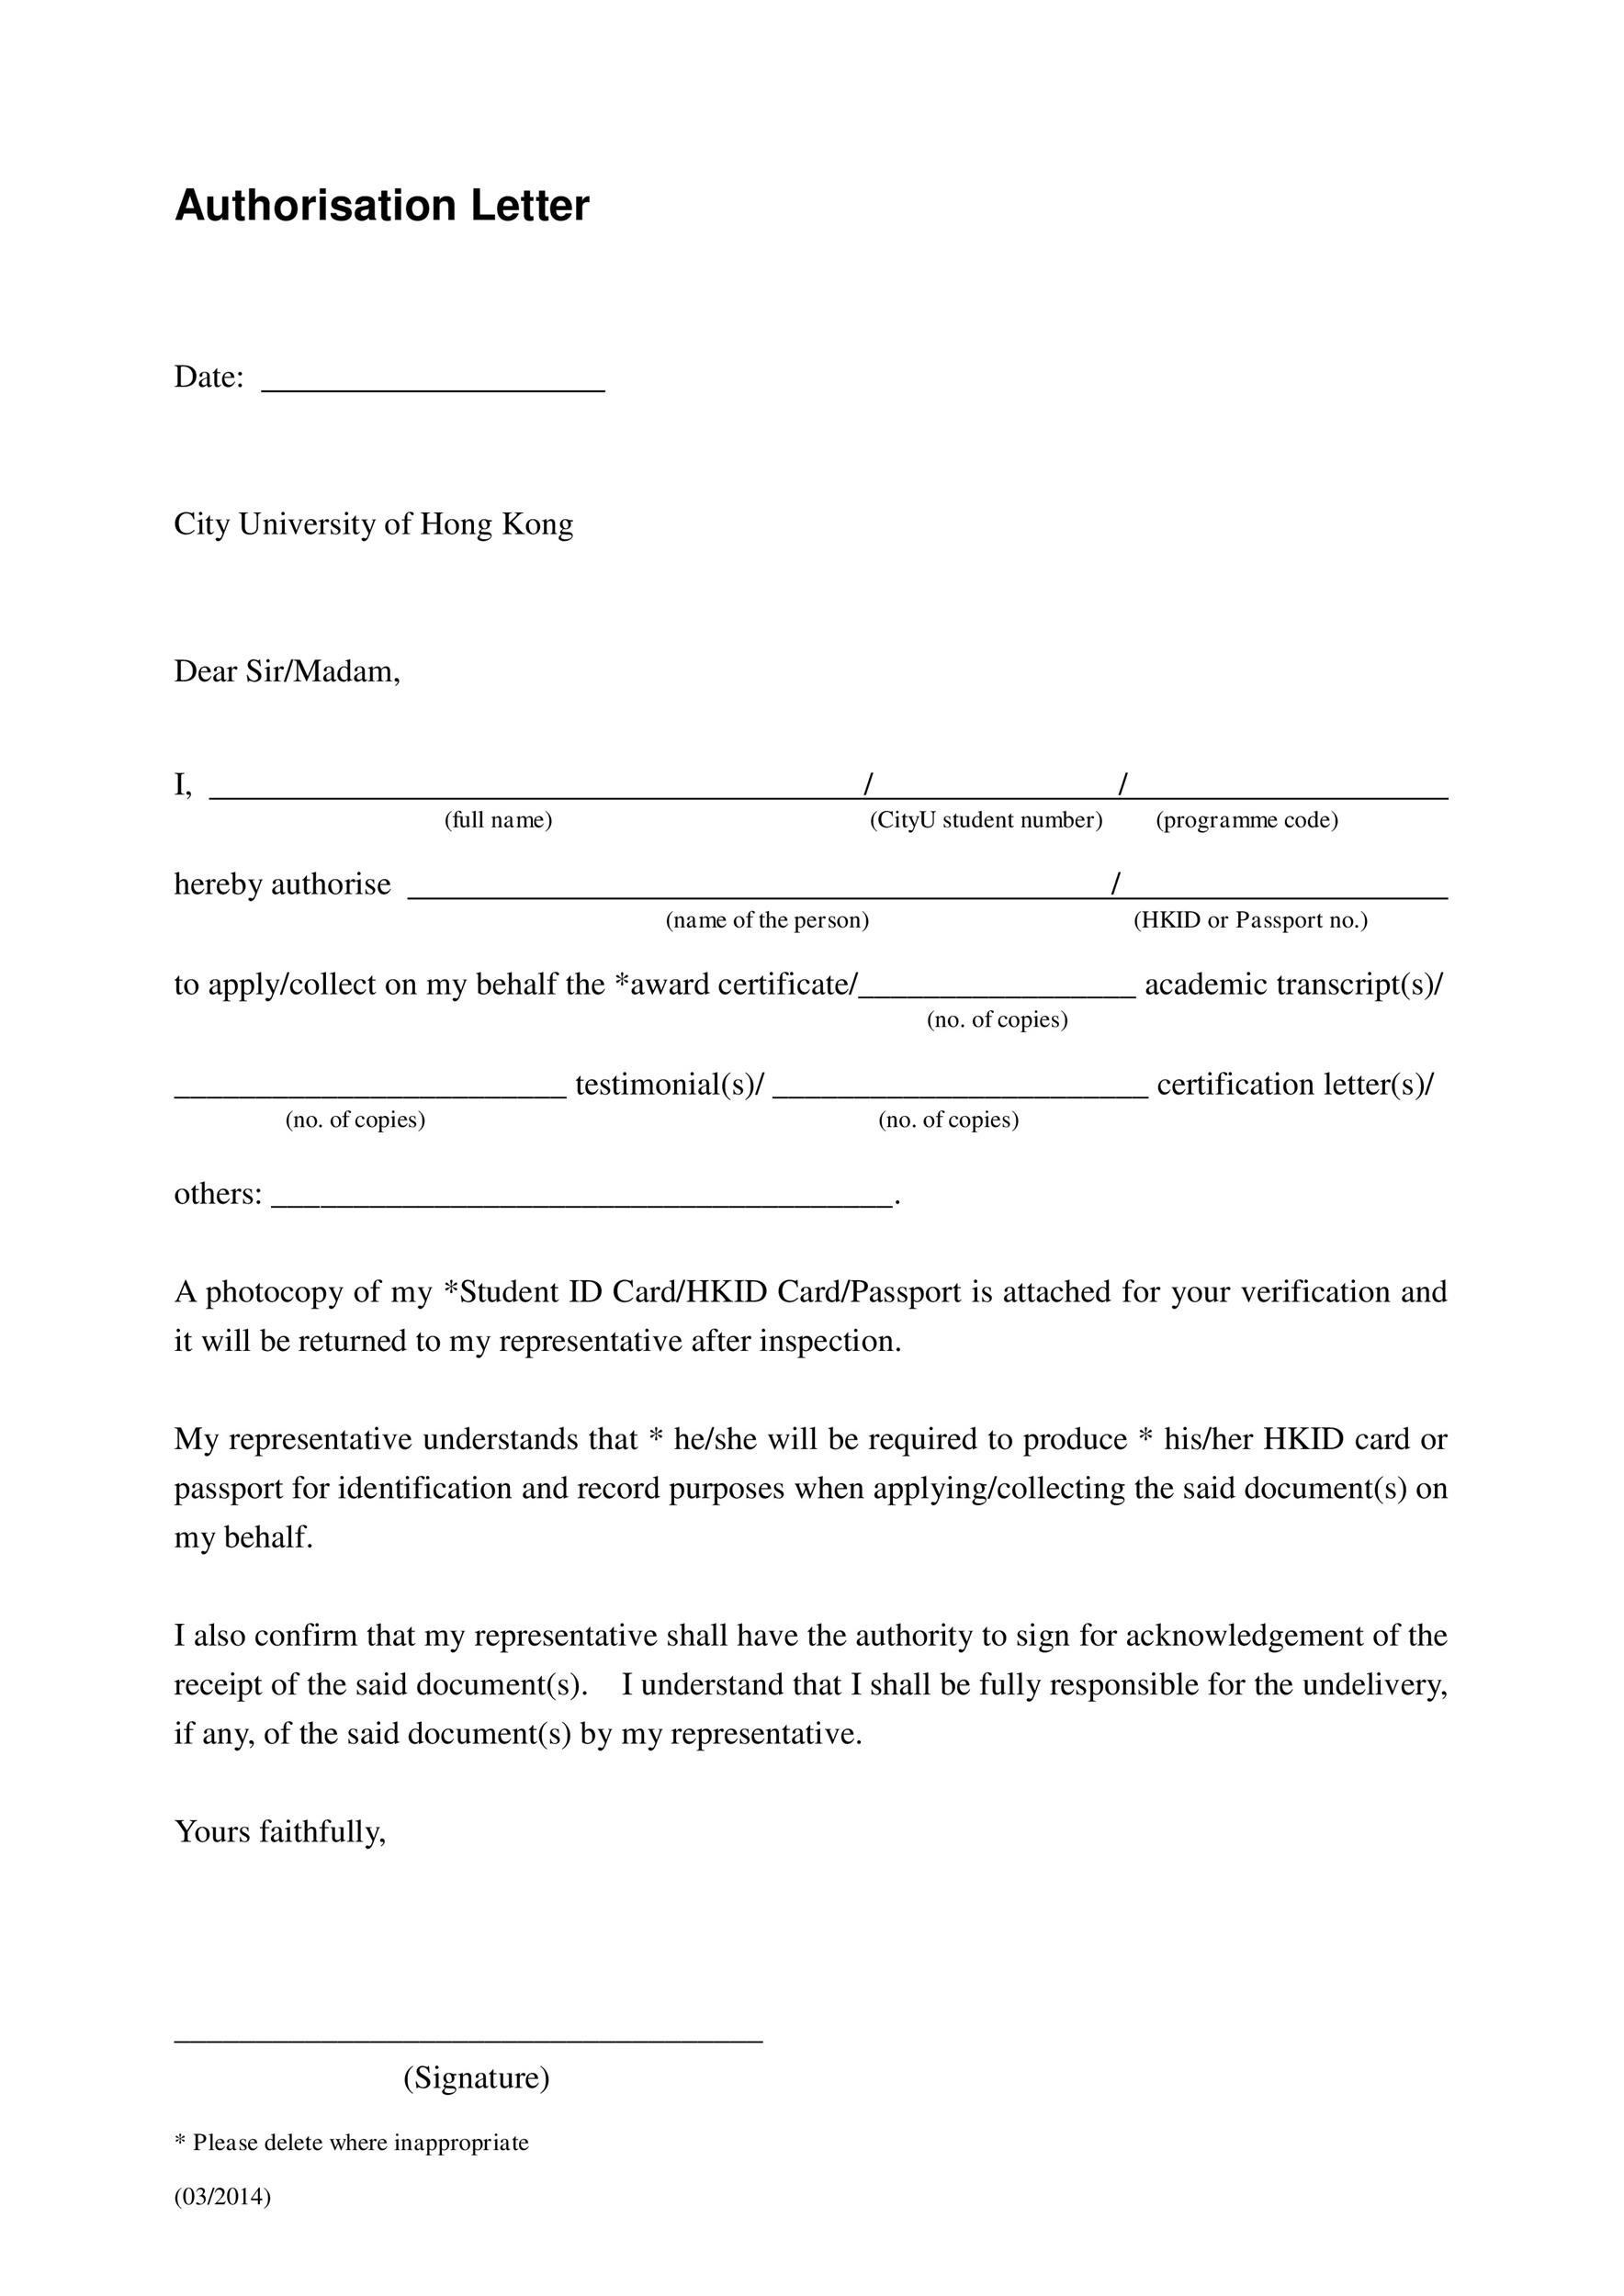 46 Authorization Letter Samples  Templates ᐅ Template Lab